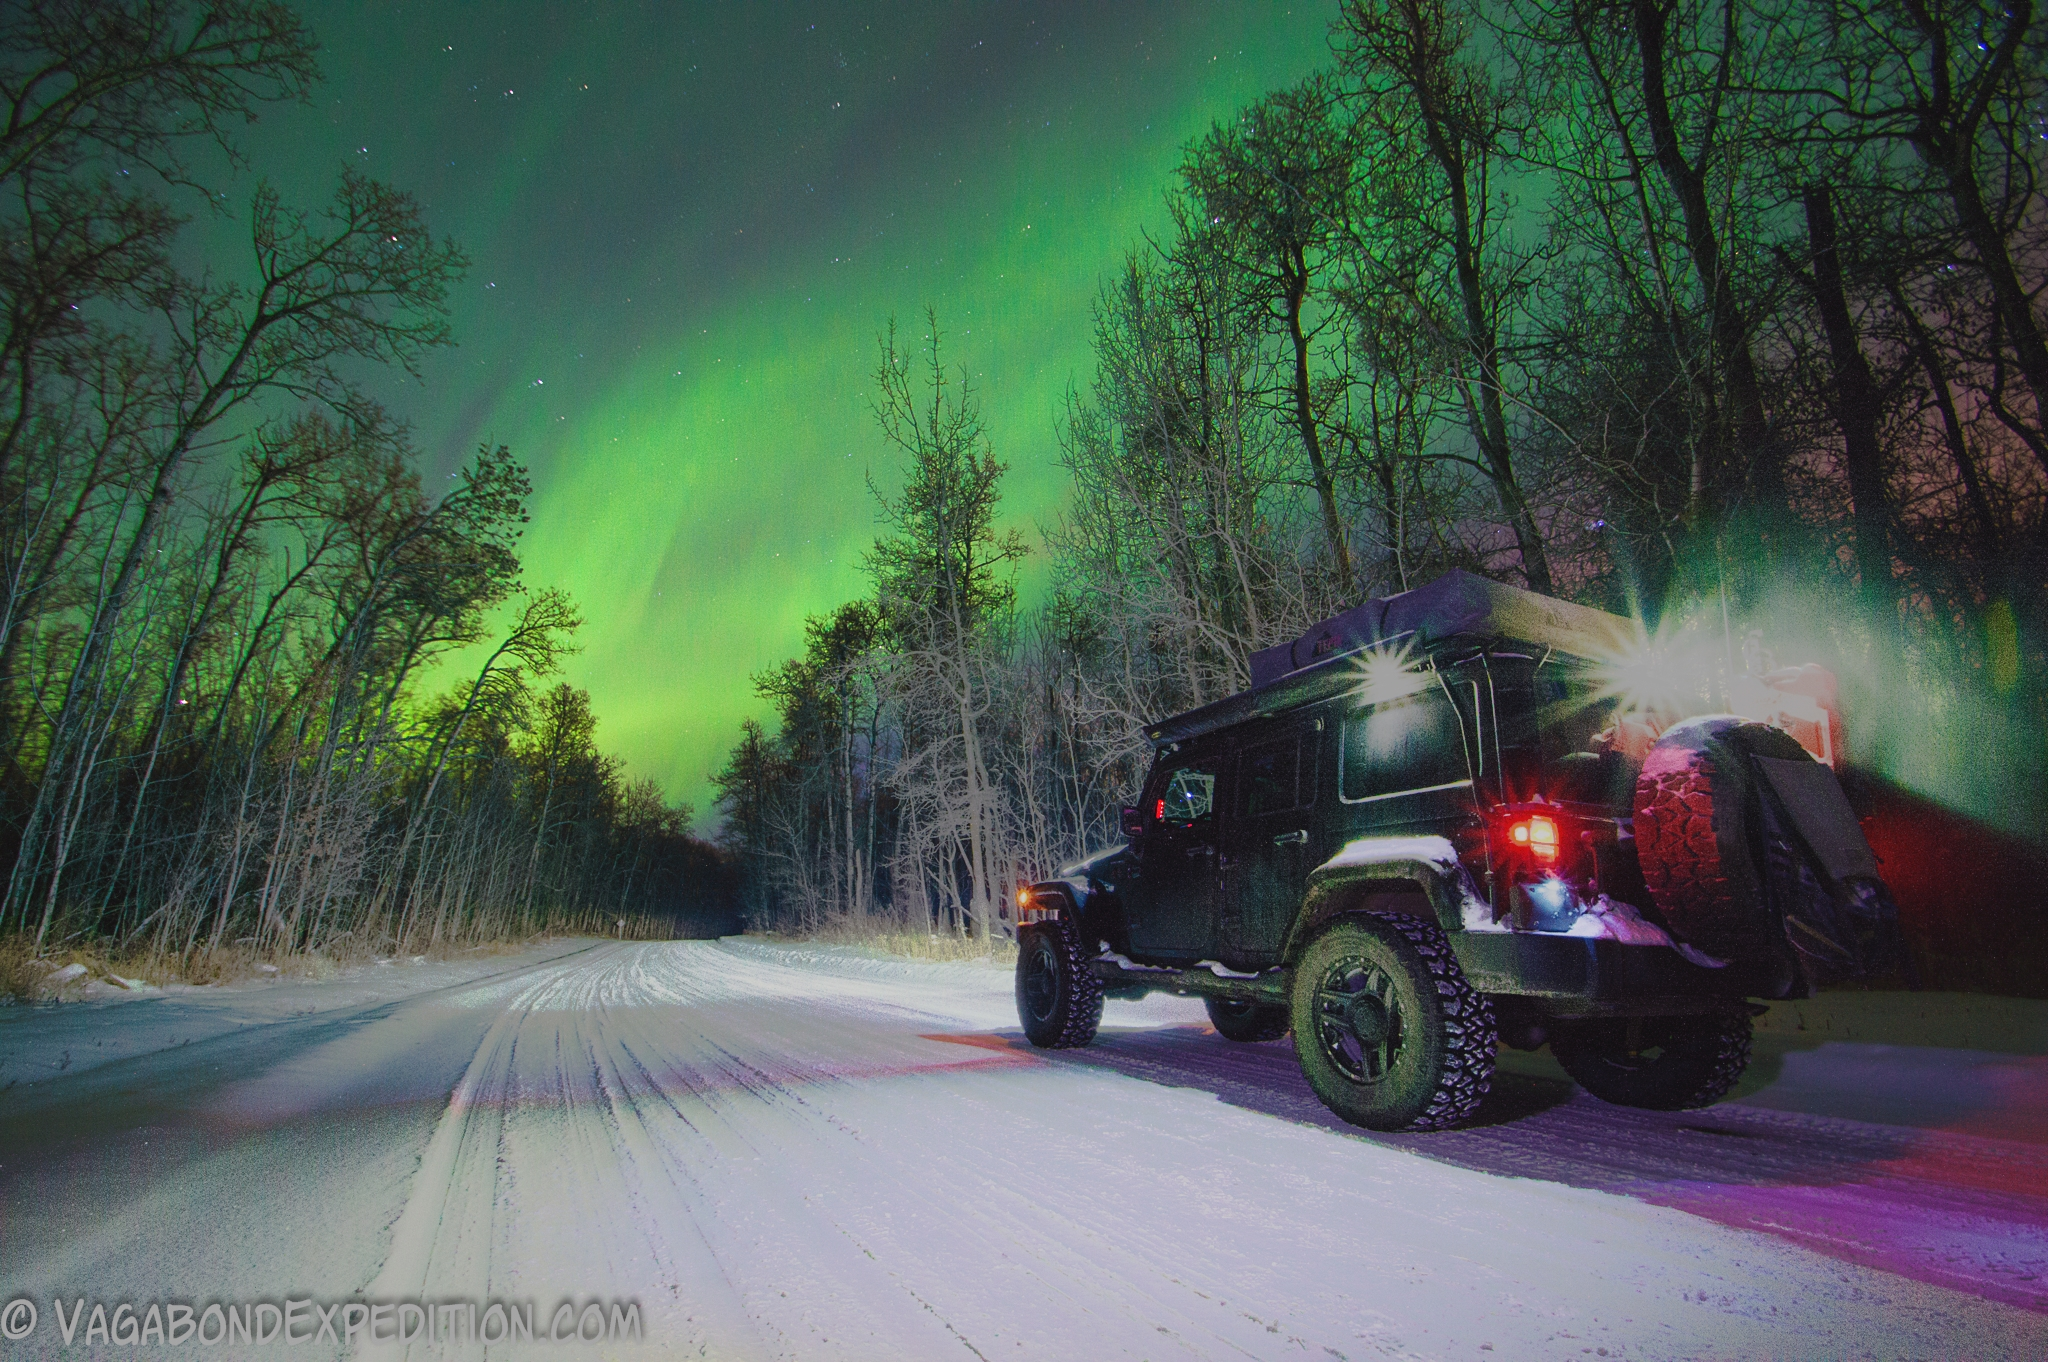 the Northern Lights (Aurora) and the Overland Jeep Wrangler